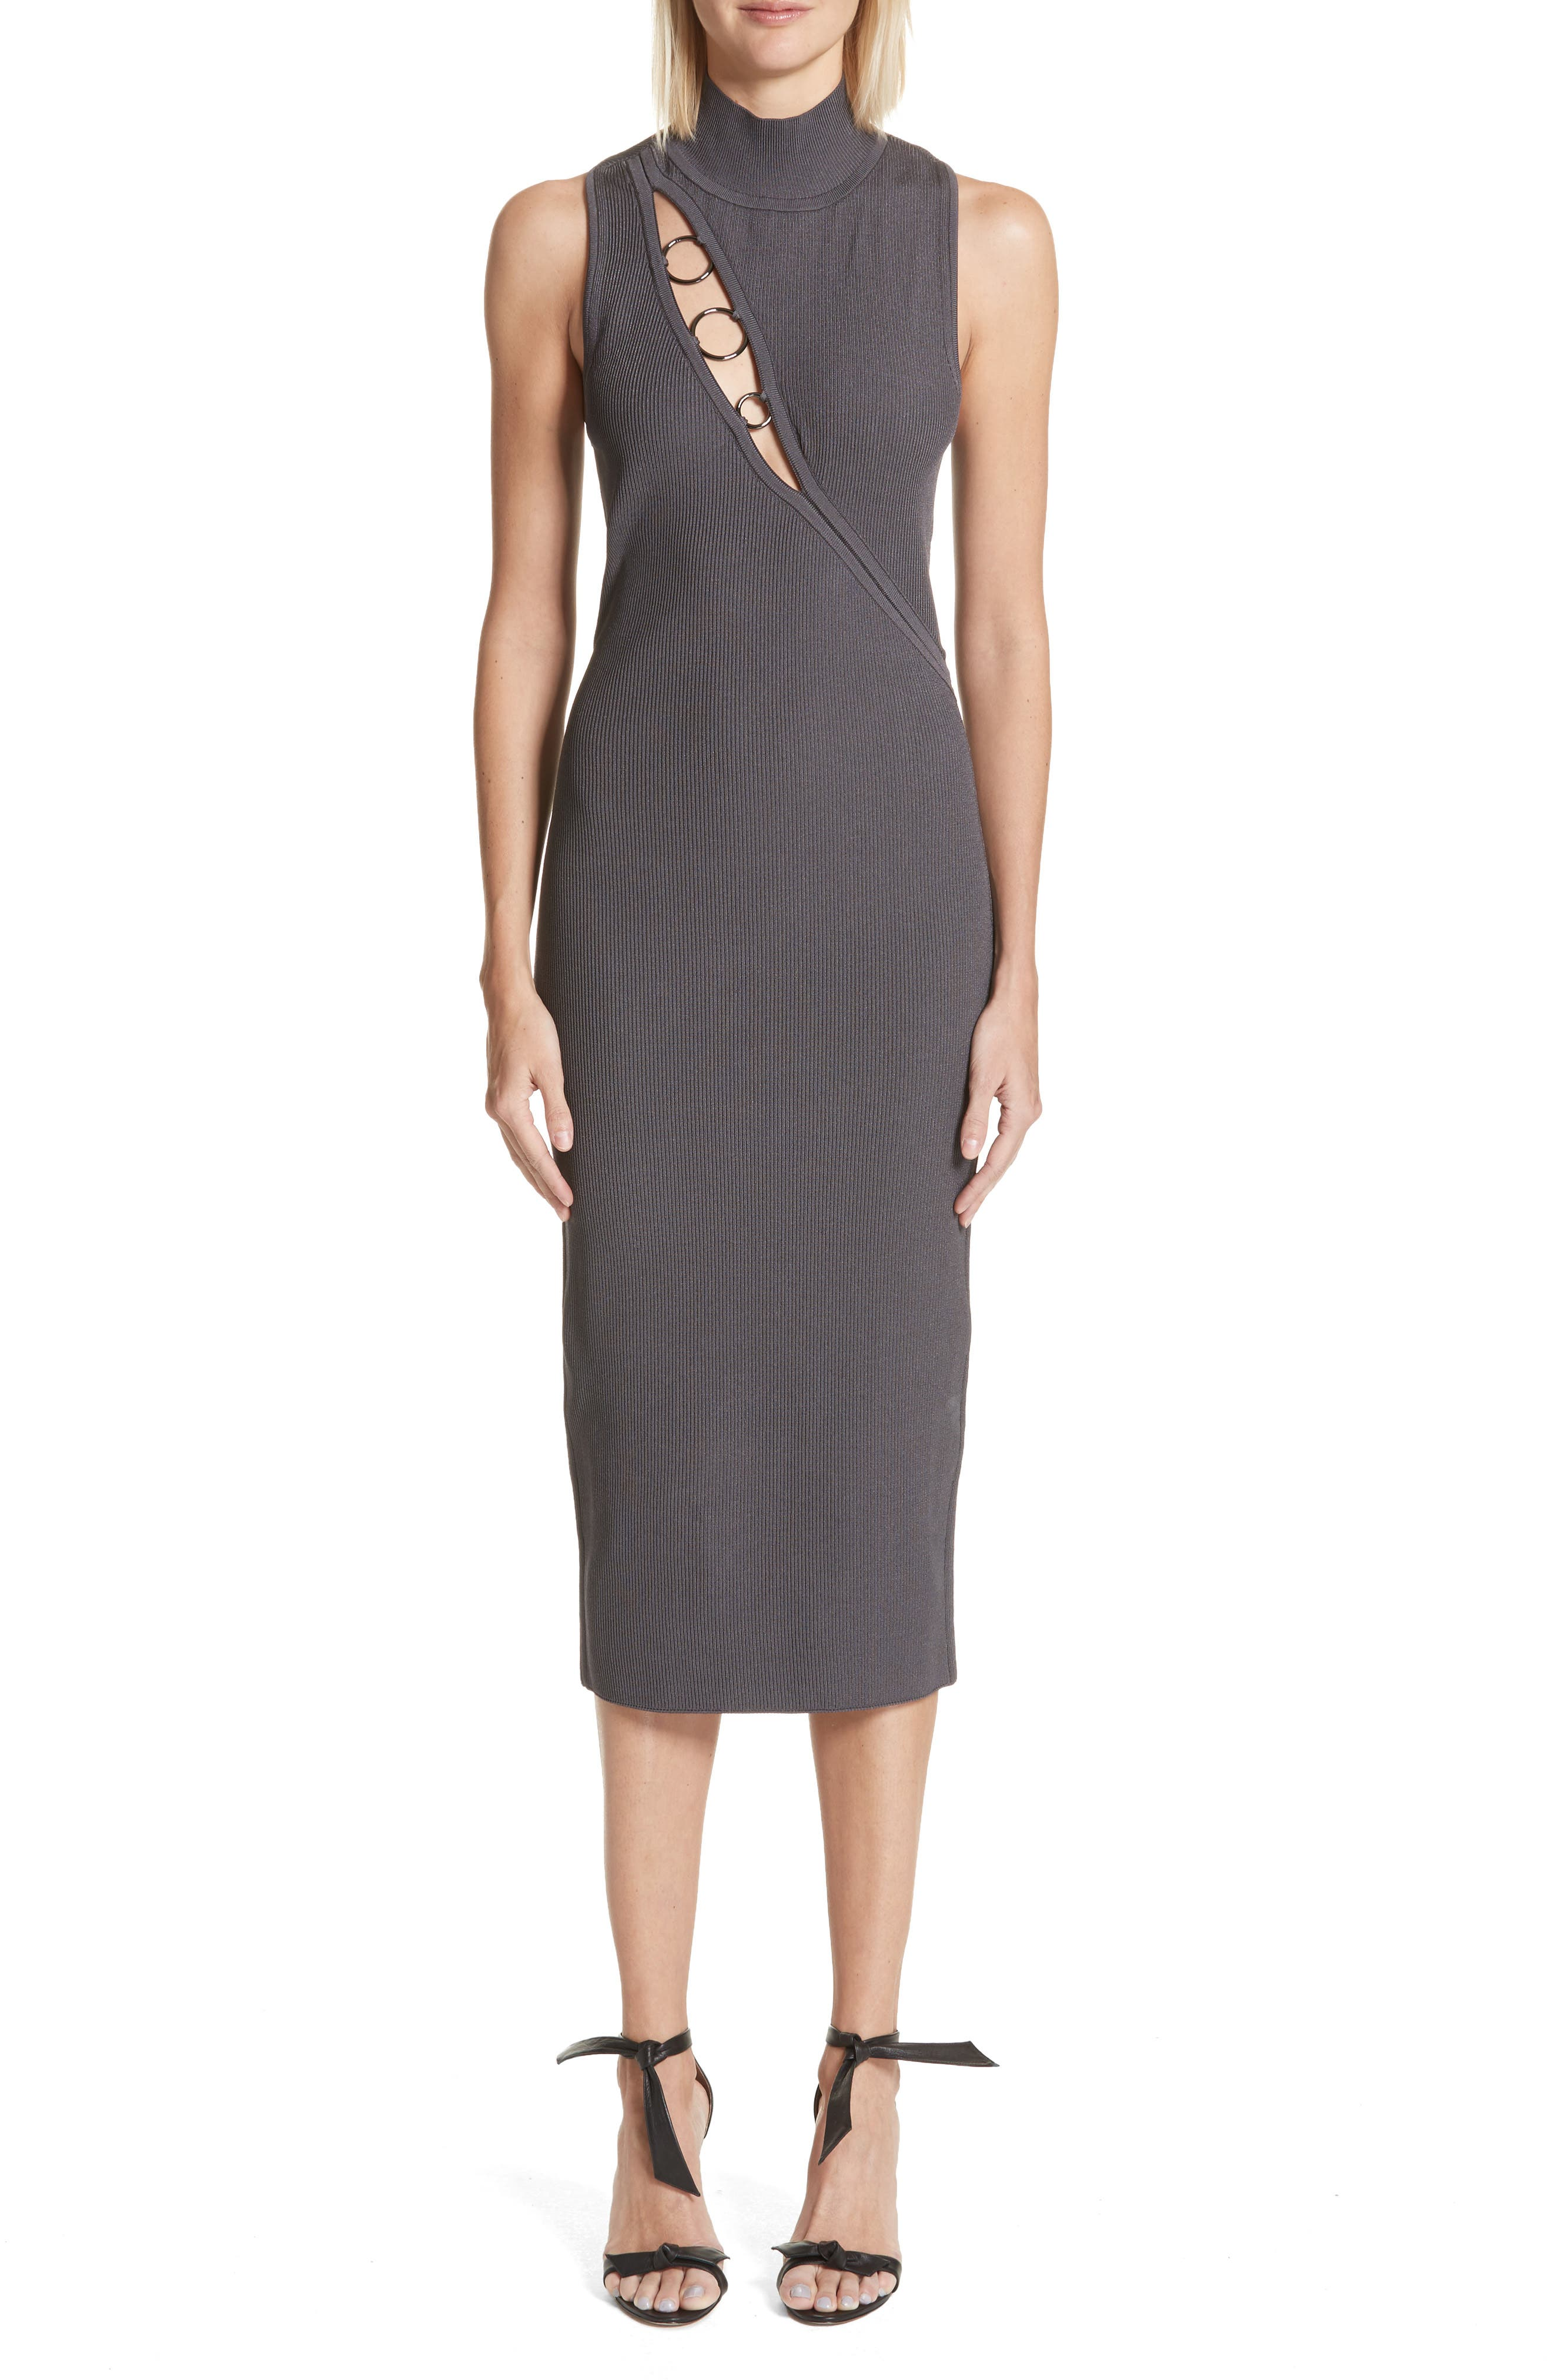 Alsia Cutout Knit Dress,                         Main,                         color, Graphite/ Gunmetal